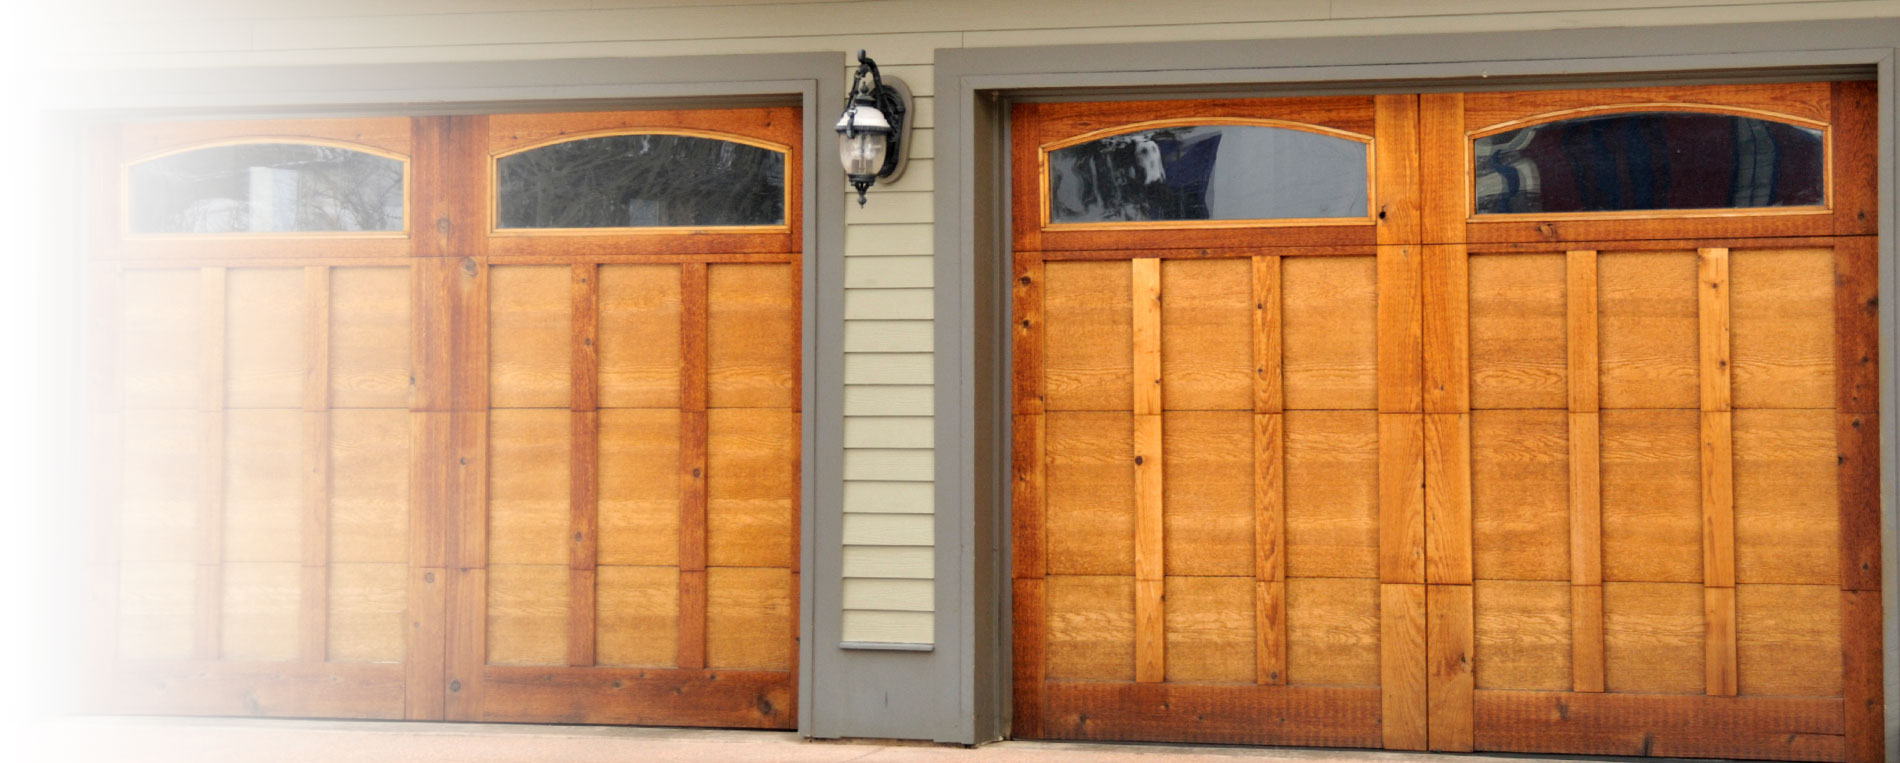 Garage Door Repair Monticello Mn Expert Technicians Fast Responses